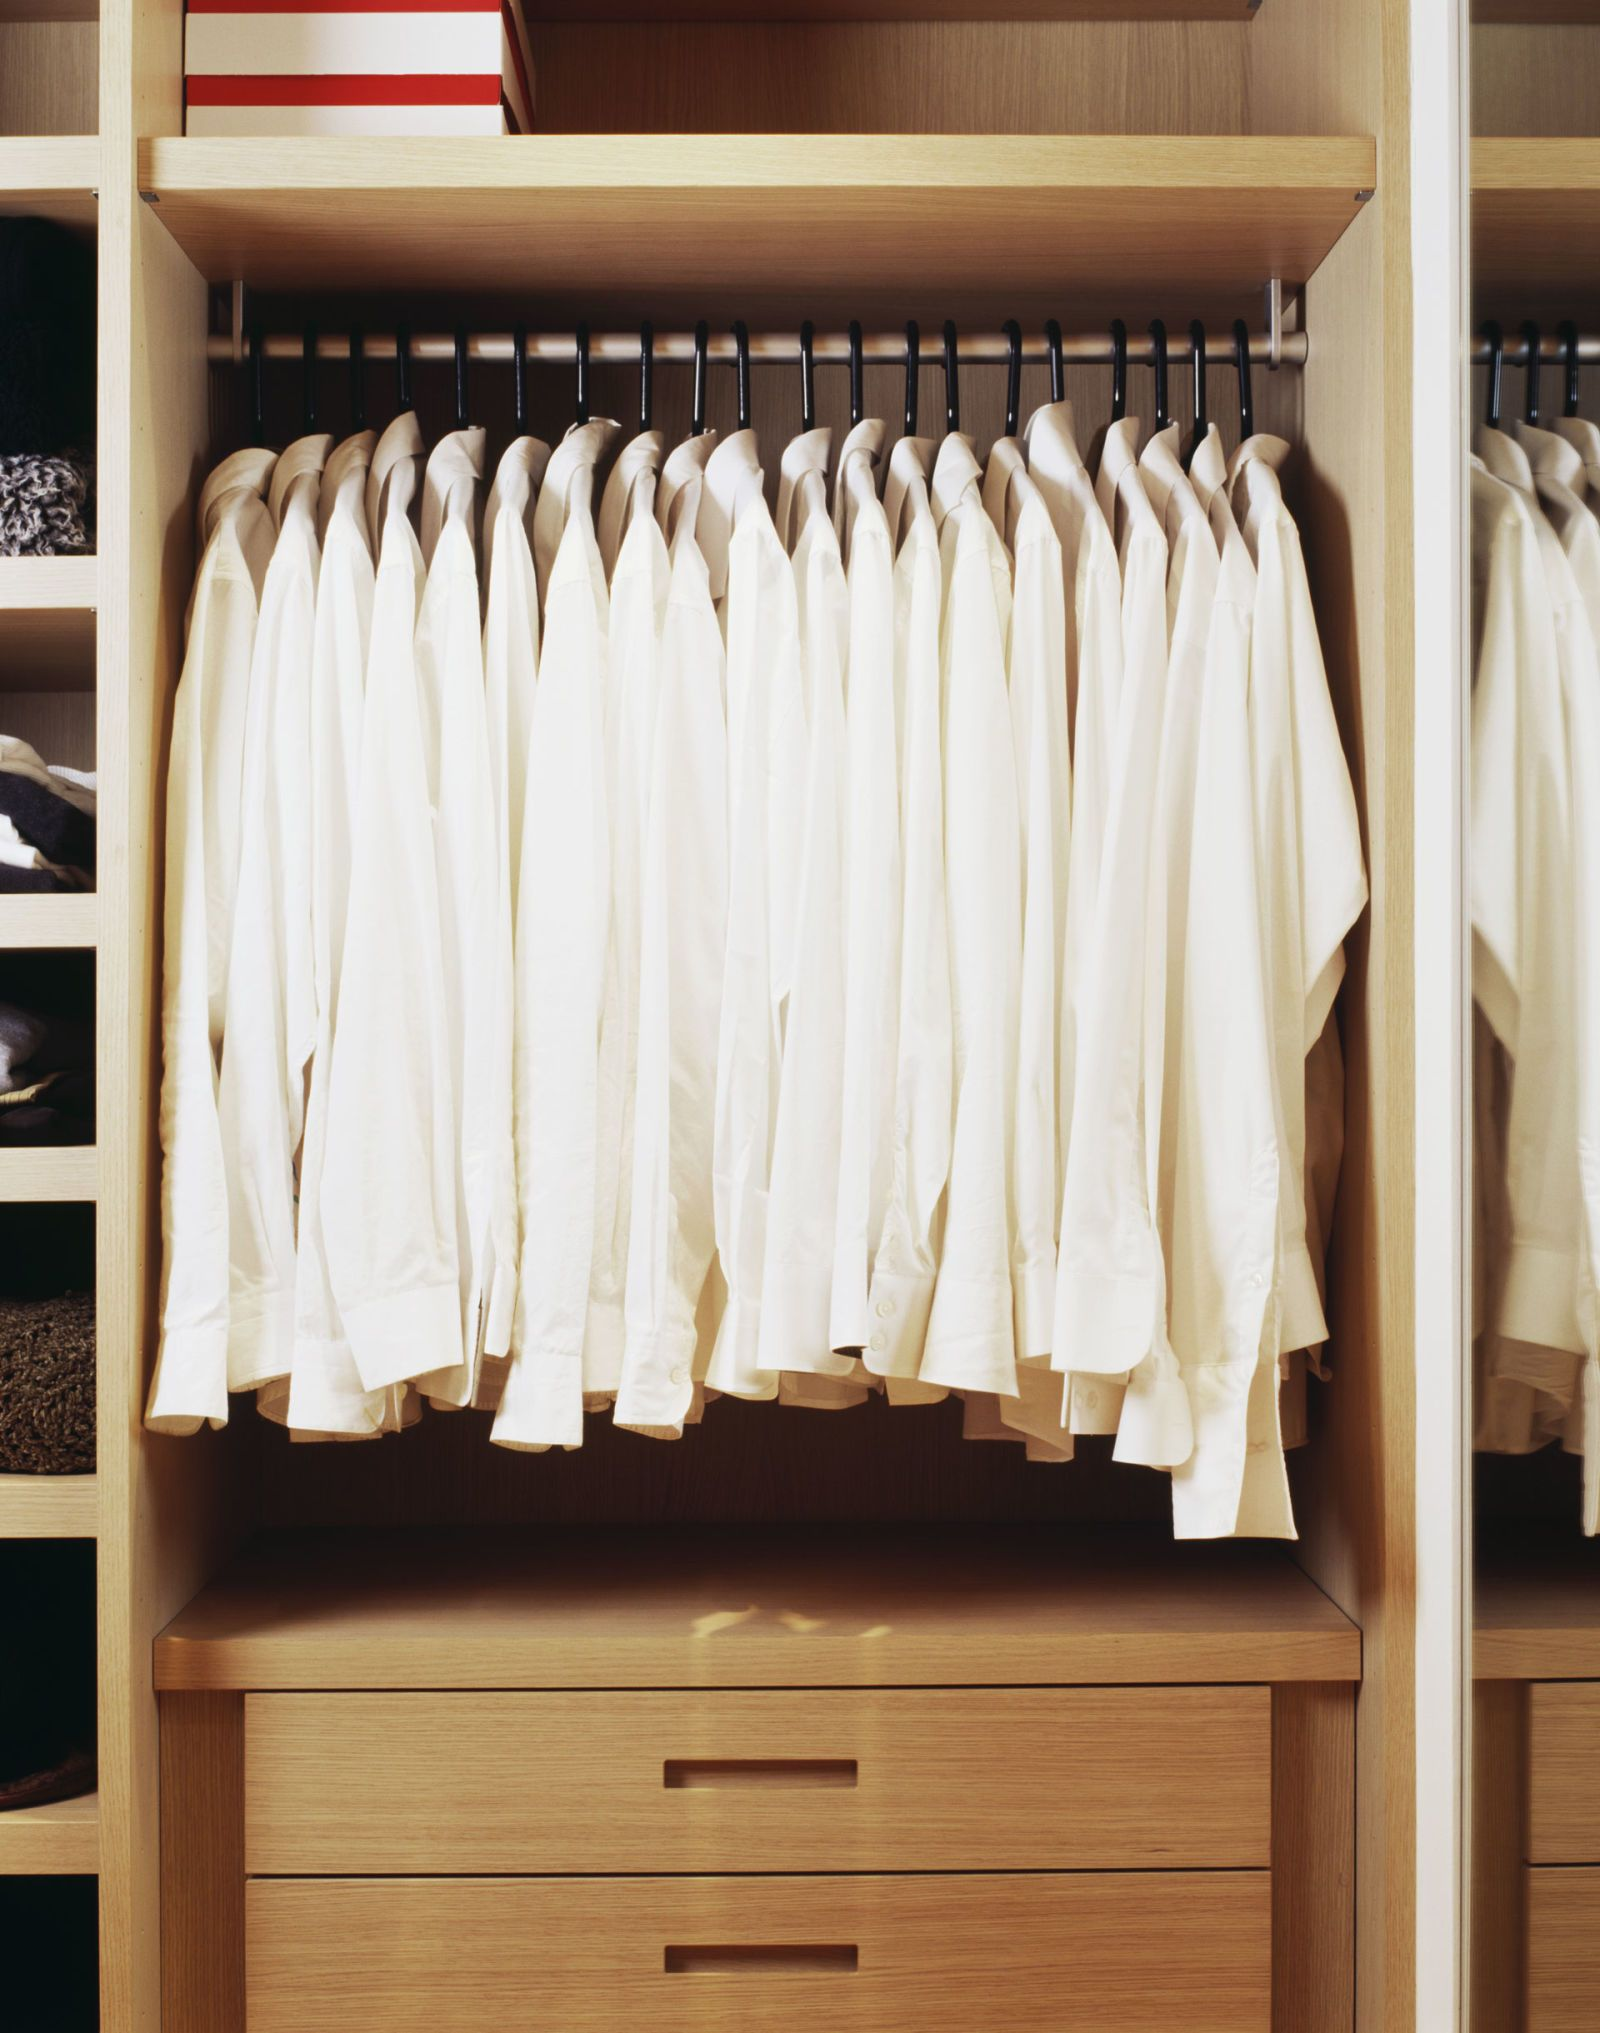 make a lifestyle you ways the your many racks one closet it for thing room are so this without clothes wonderful tutorials articles doing made in have s ve on whether work there to wardrobe